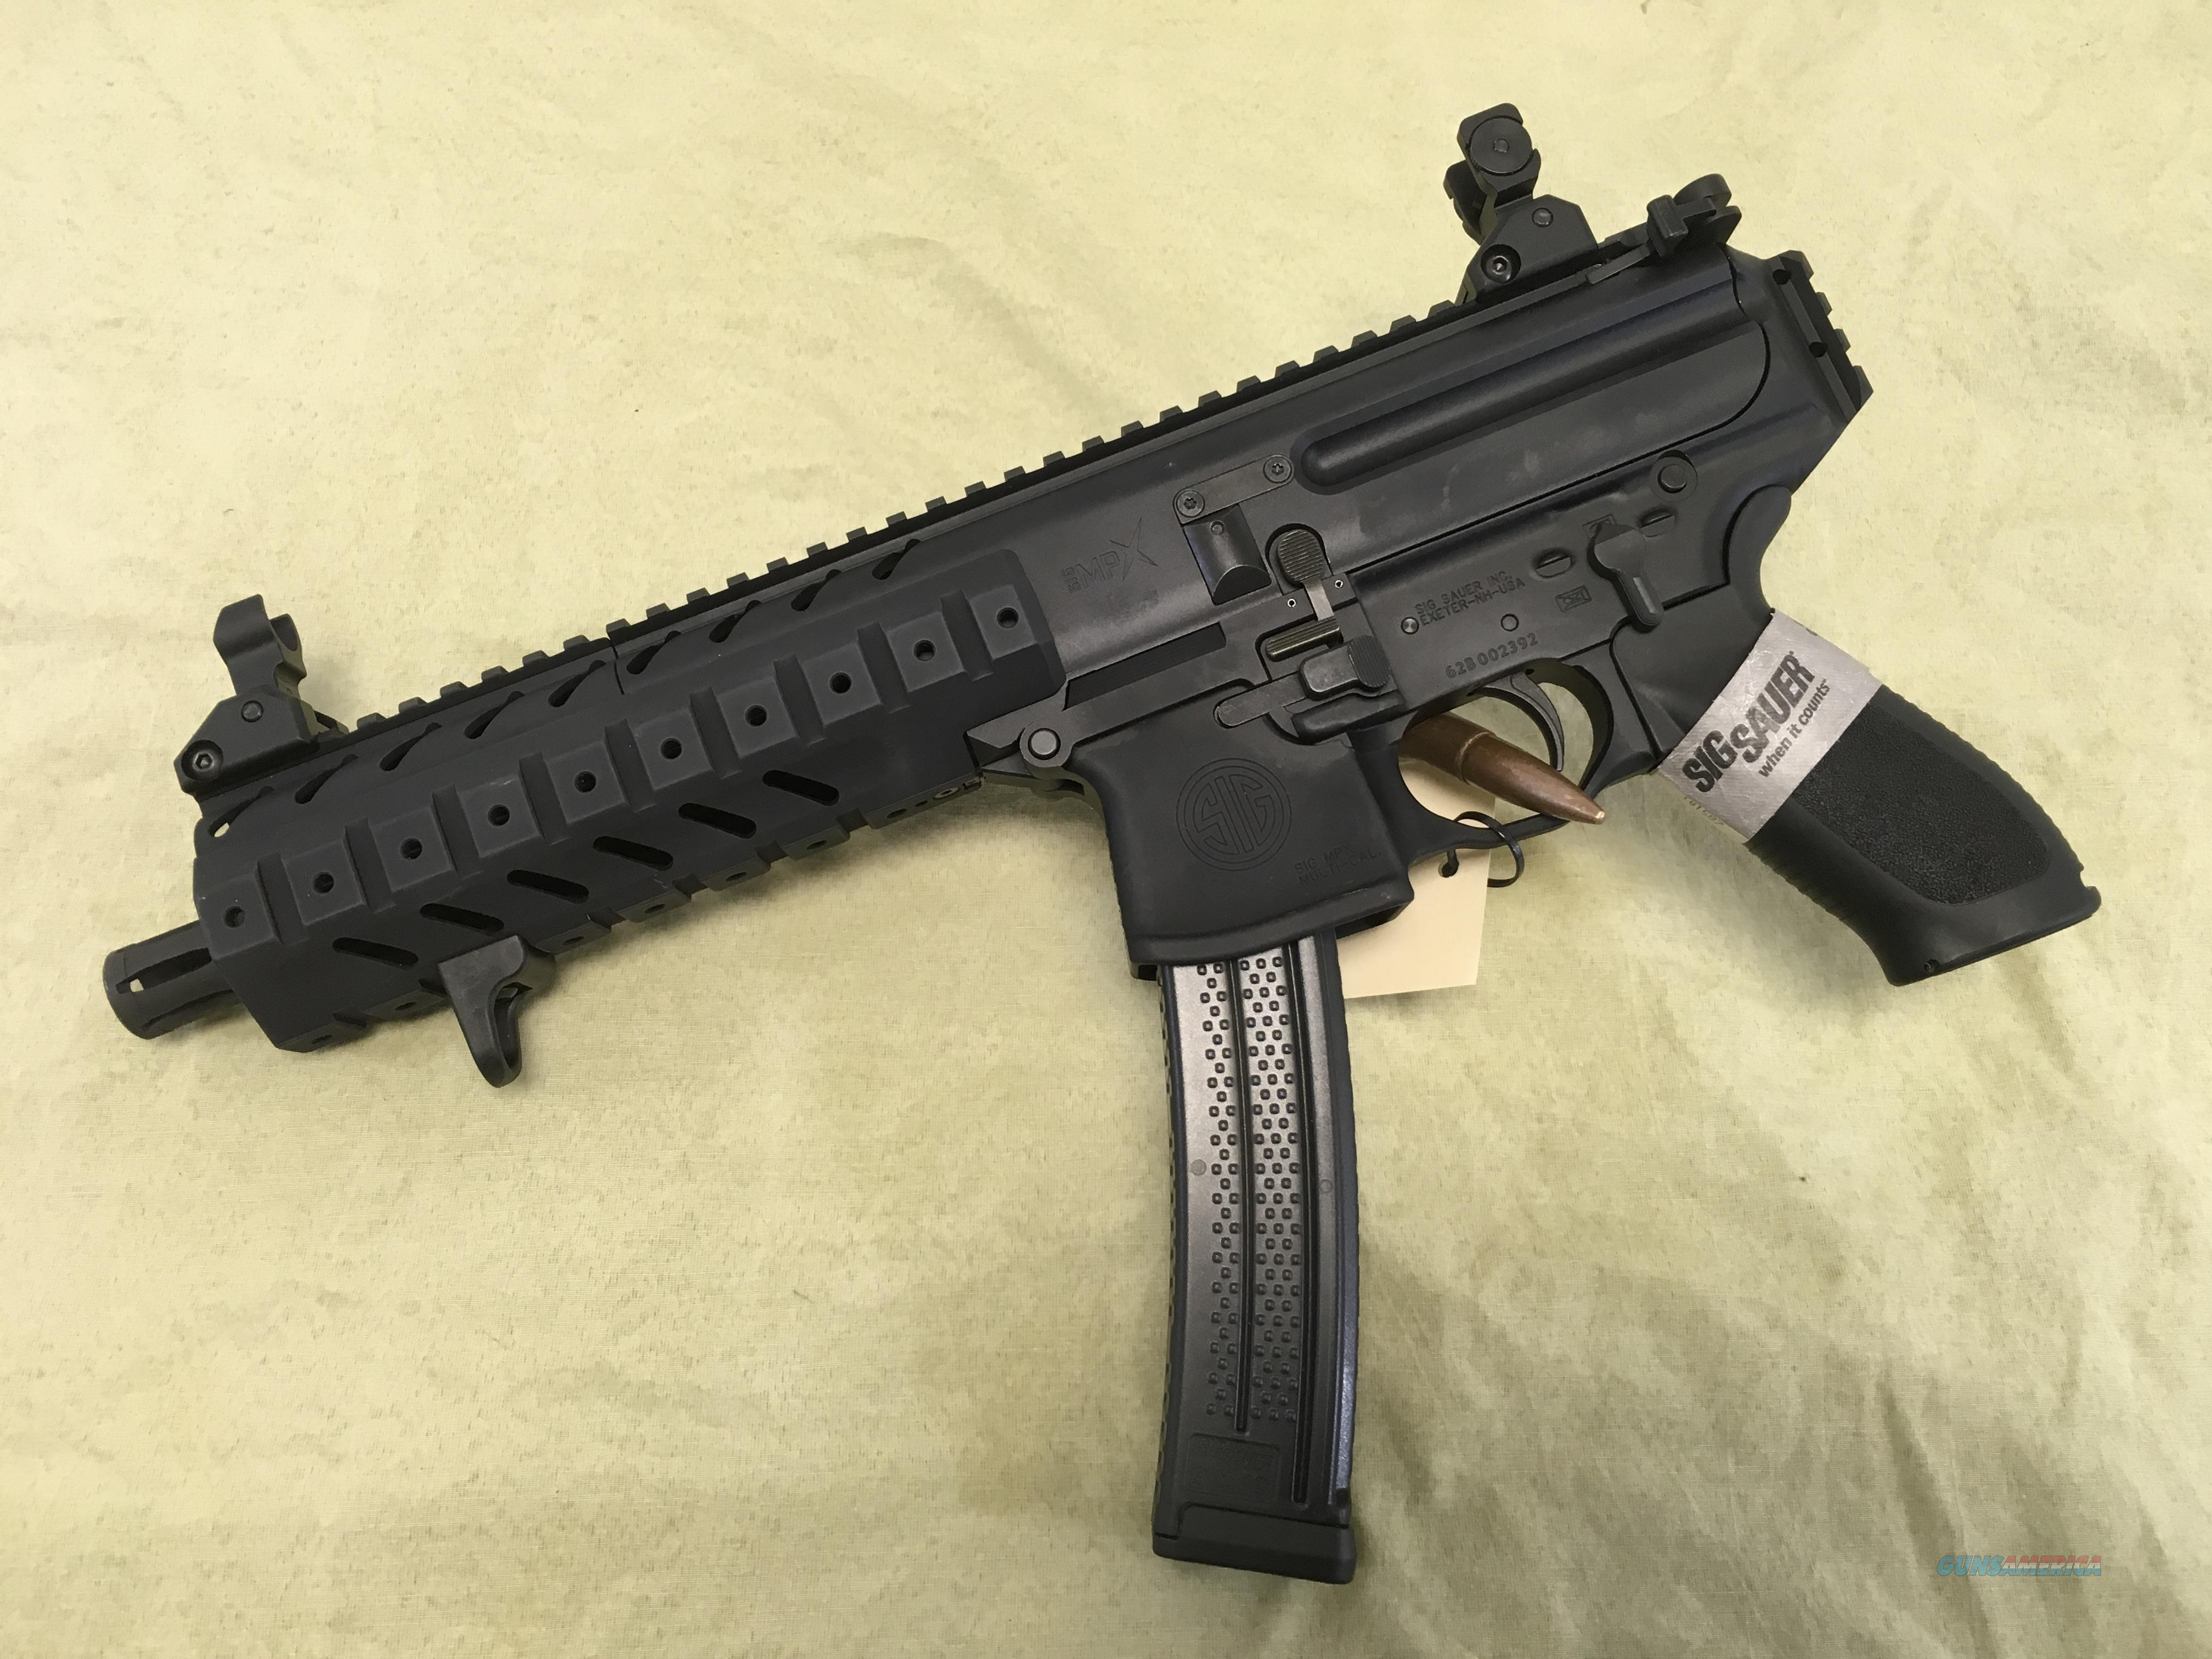 Sig MPX 9mm AR style pistol NIB  Guns > Pistols > Sig - Sauer/Sigarms Pistols > Other